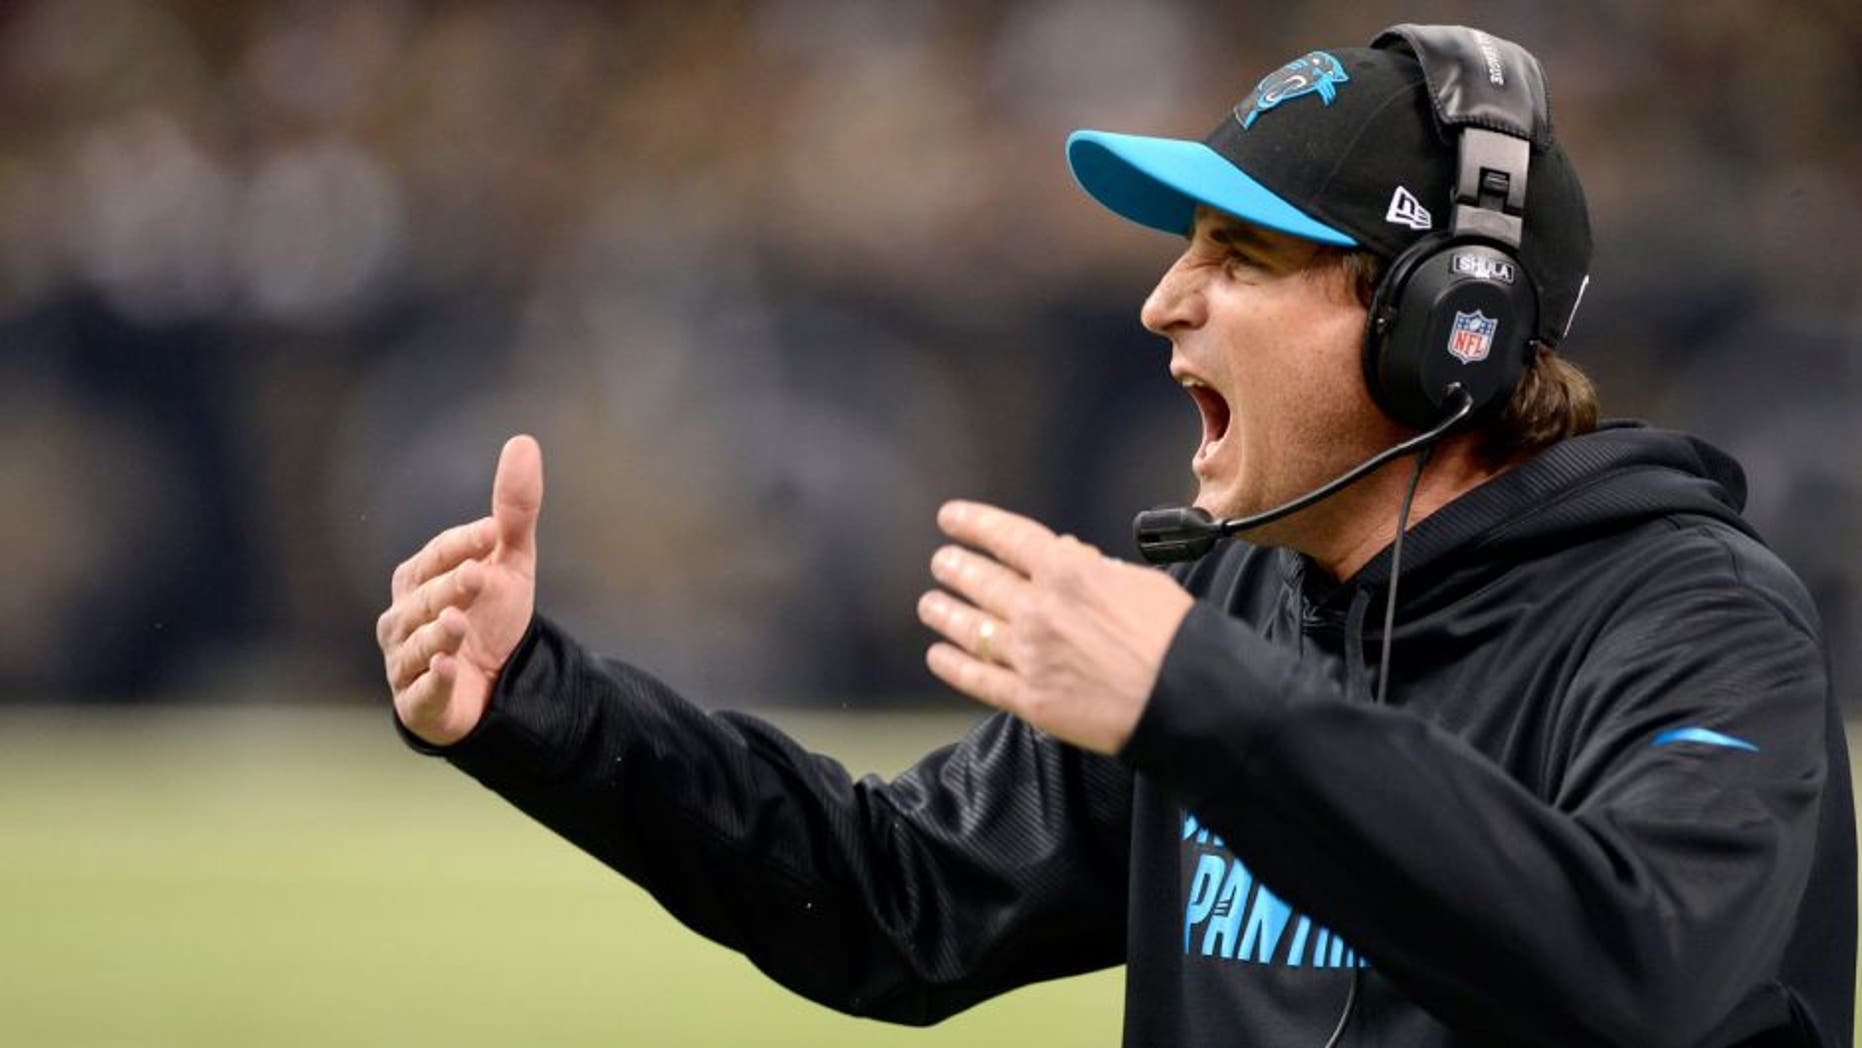 Dec 30, 2012; New Orleans, LA, USA; Carolina Panthers quarterback coach Mike Shula yells to the team from the sidelines during second half of their game against the New Orleans Saints at the Mercedes-Benz Superdome. The Carolina Panthers defeated the New Orleans Saints 44-38. John David Mercer-USA TODAY Sports